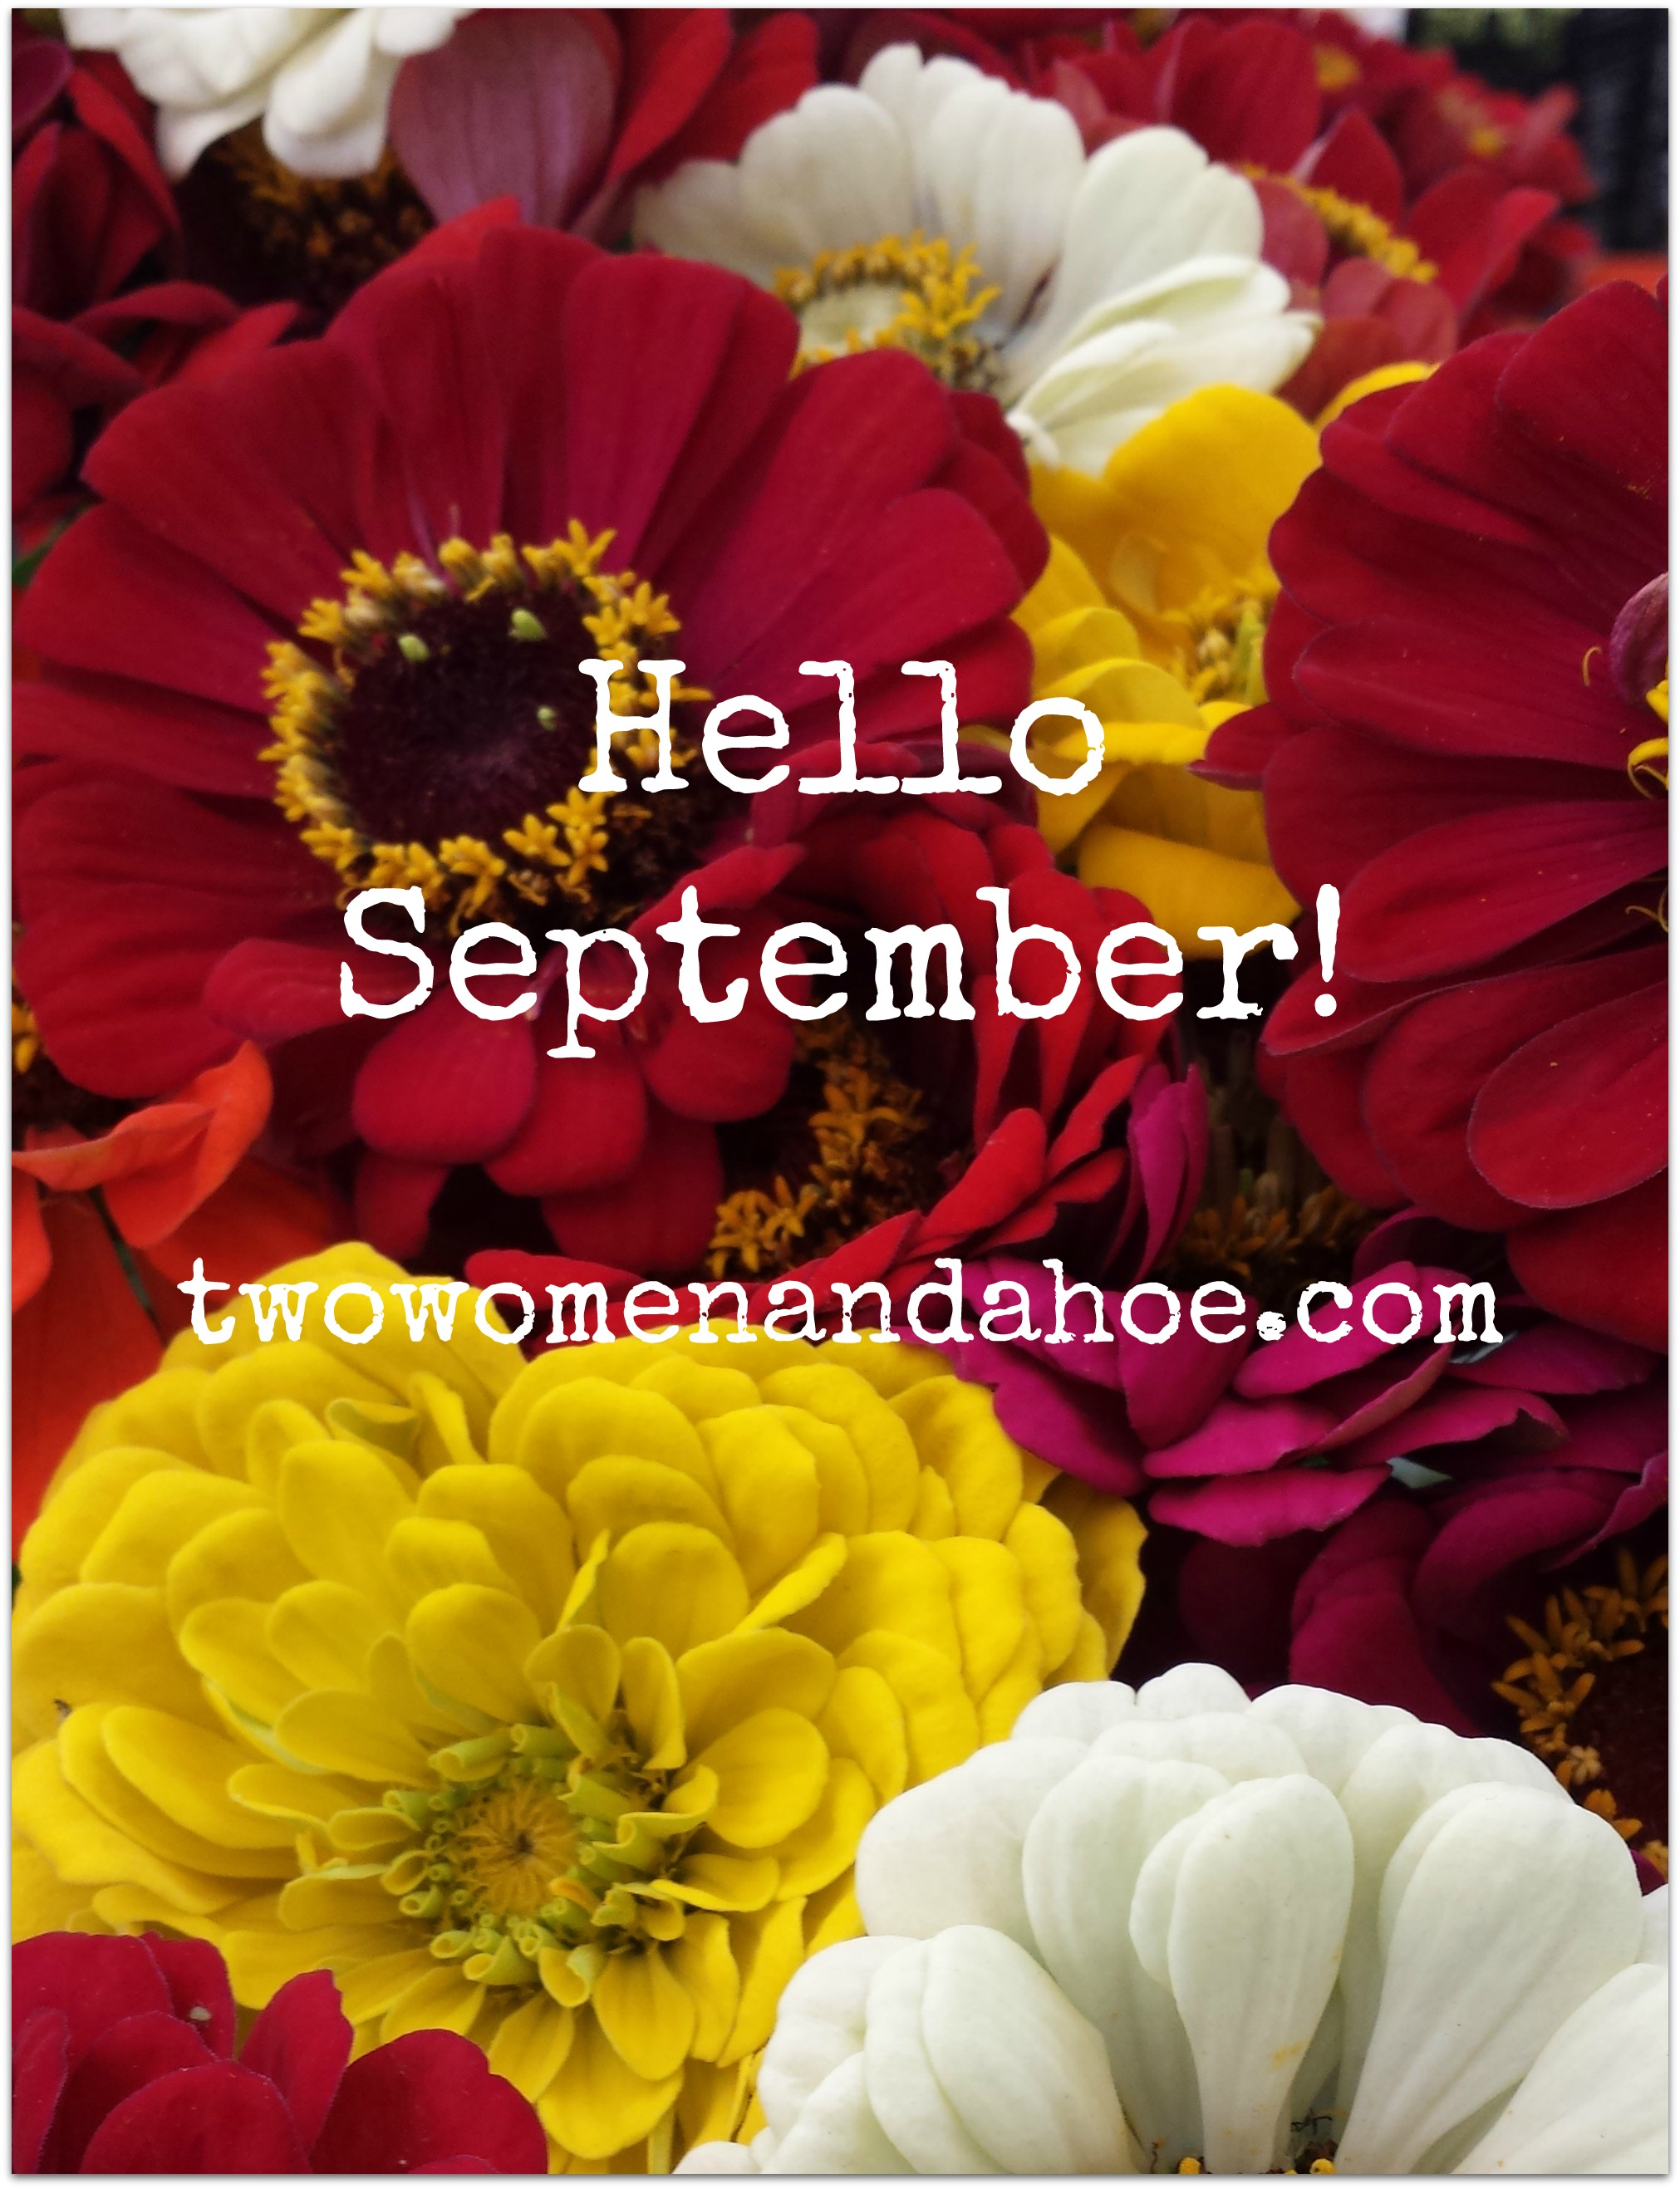 Goodbye AUGUST, Hello SEPTEMBER! - Two Women and a Hoe®